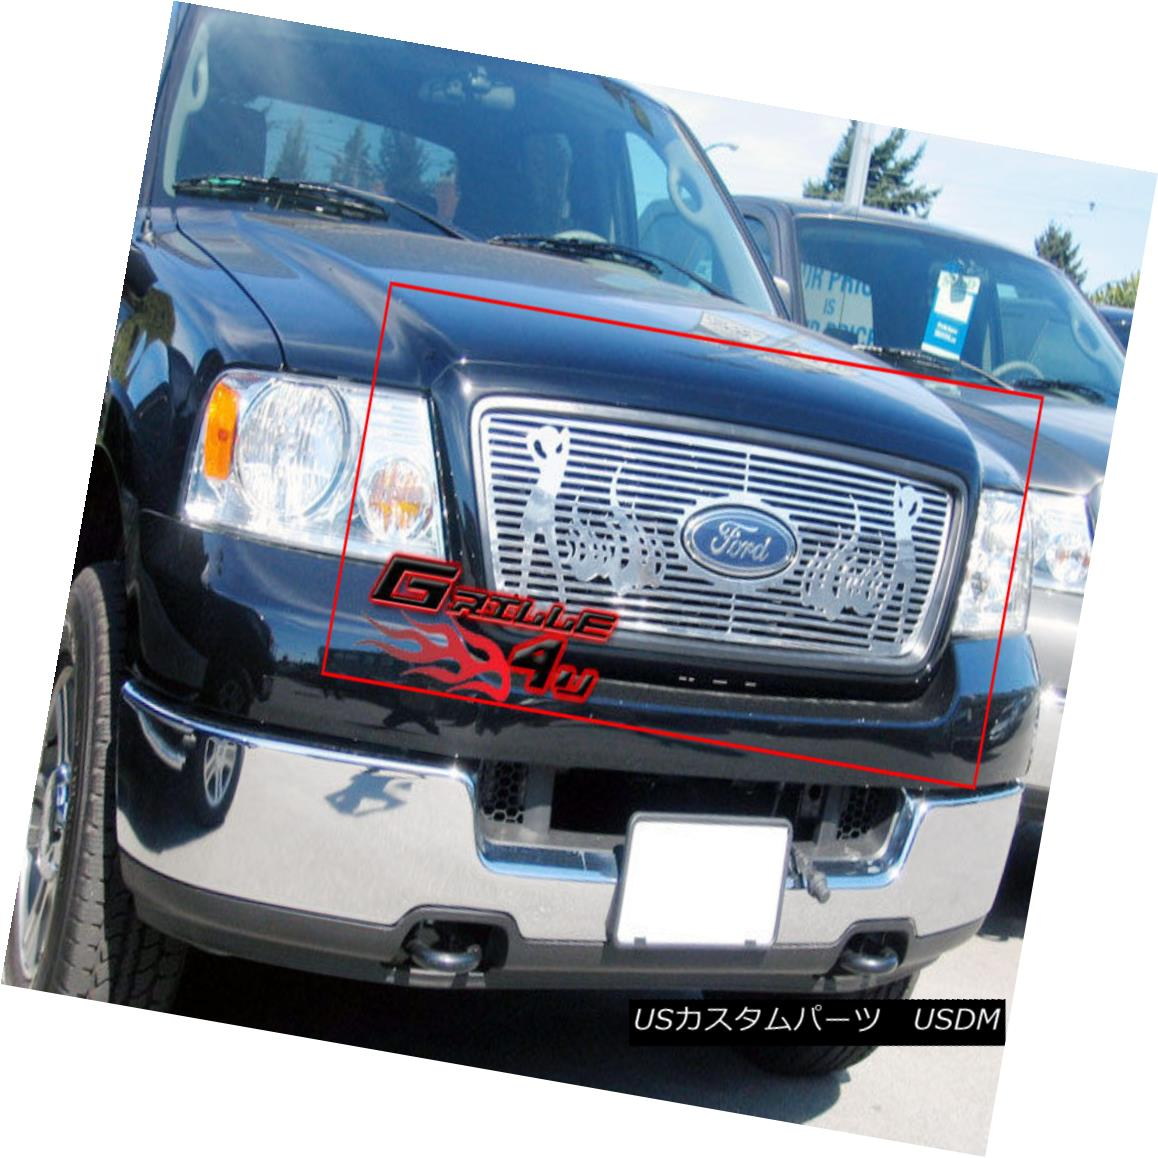 グリル 04-08 Ford F-150 Honeycomb Style Logo Show Symbolic CNC Machine Cut Grille 04-08 Ford F-150ハニカムスタイルロゴショーSymbolic CNC Machine Cut Grille